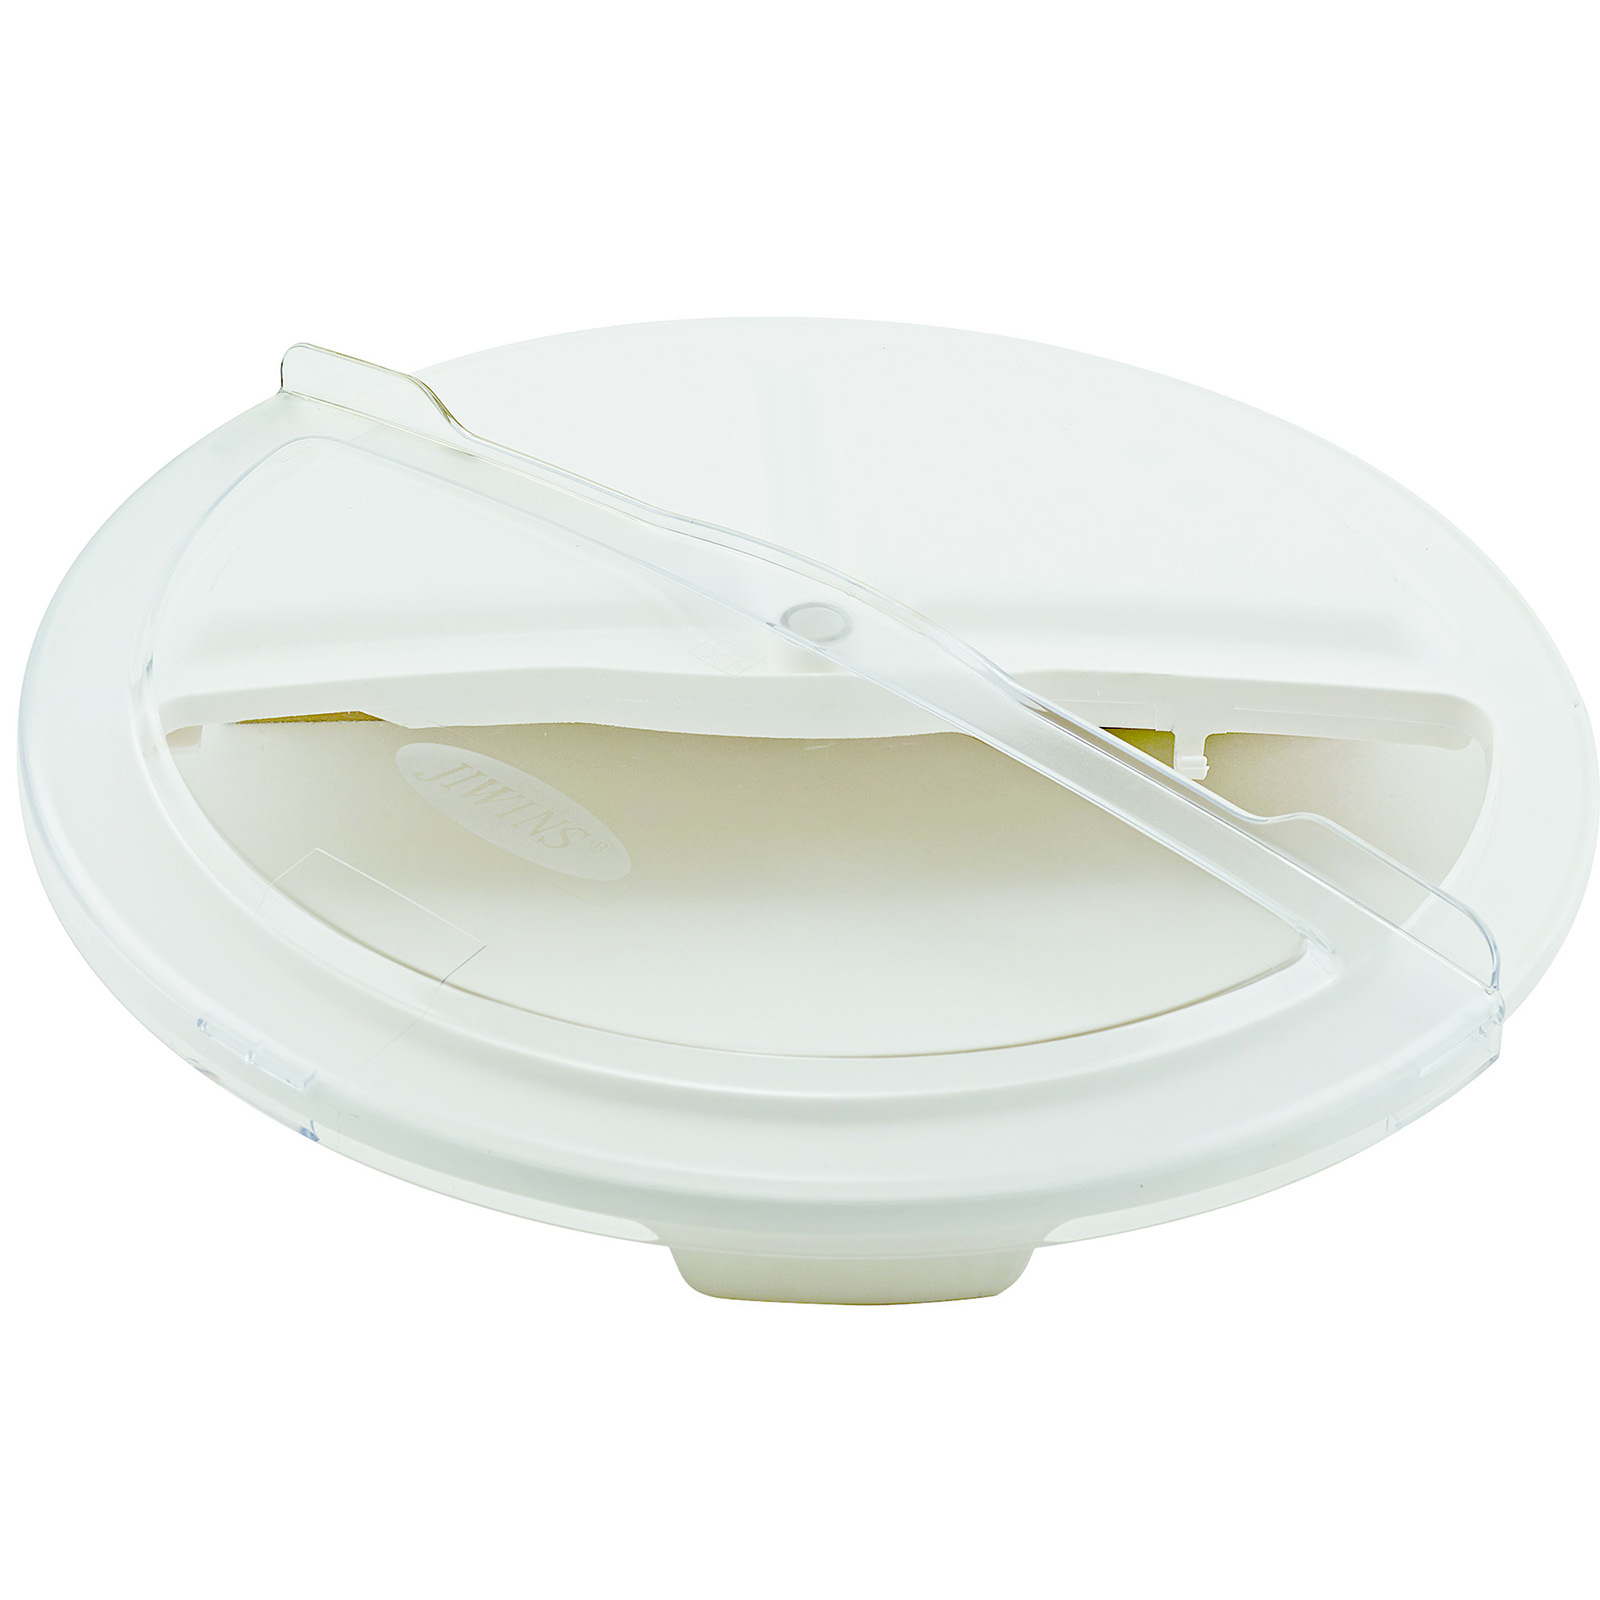 Winco FCW-10RC trash receptacle lid / top